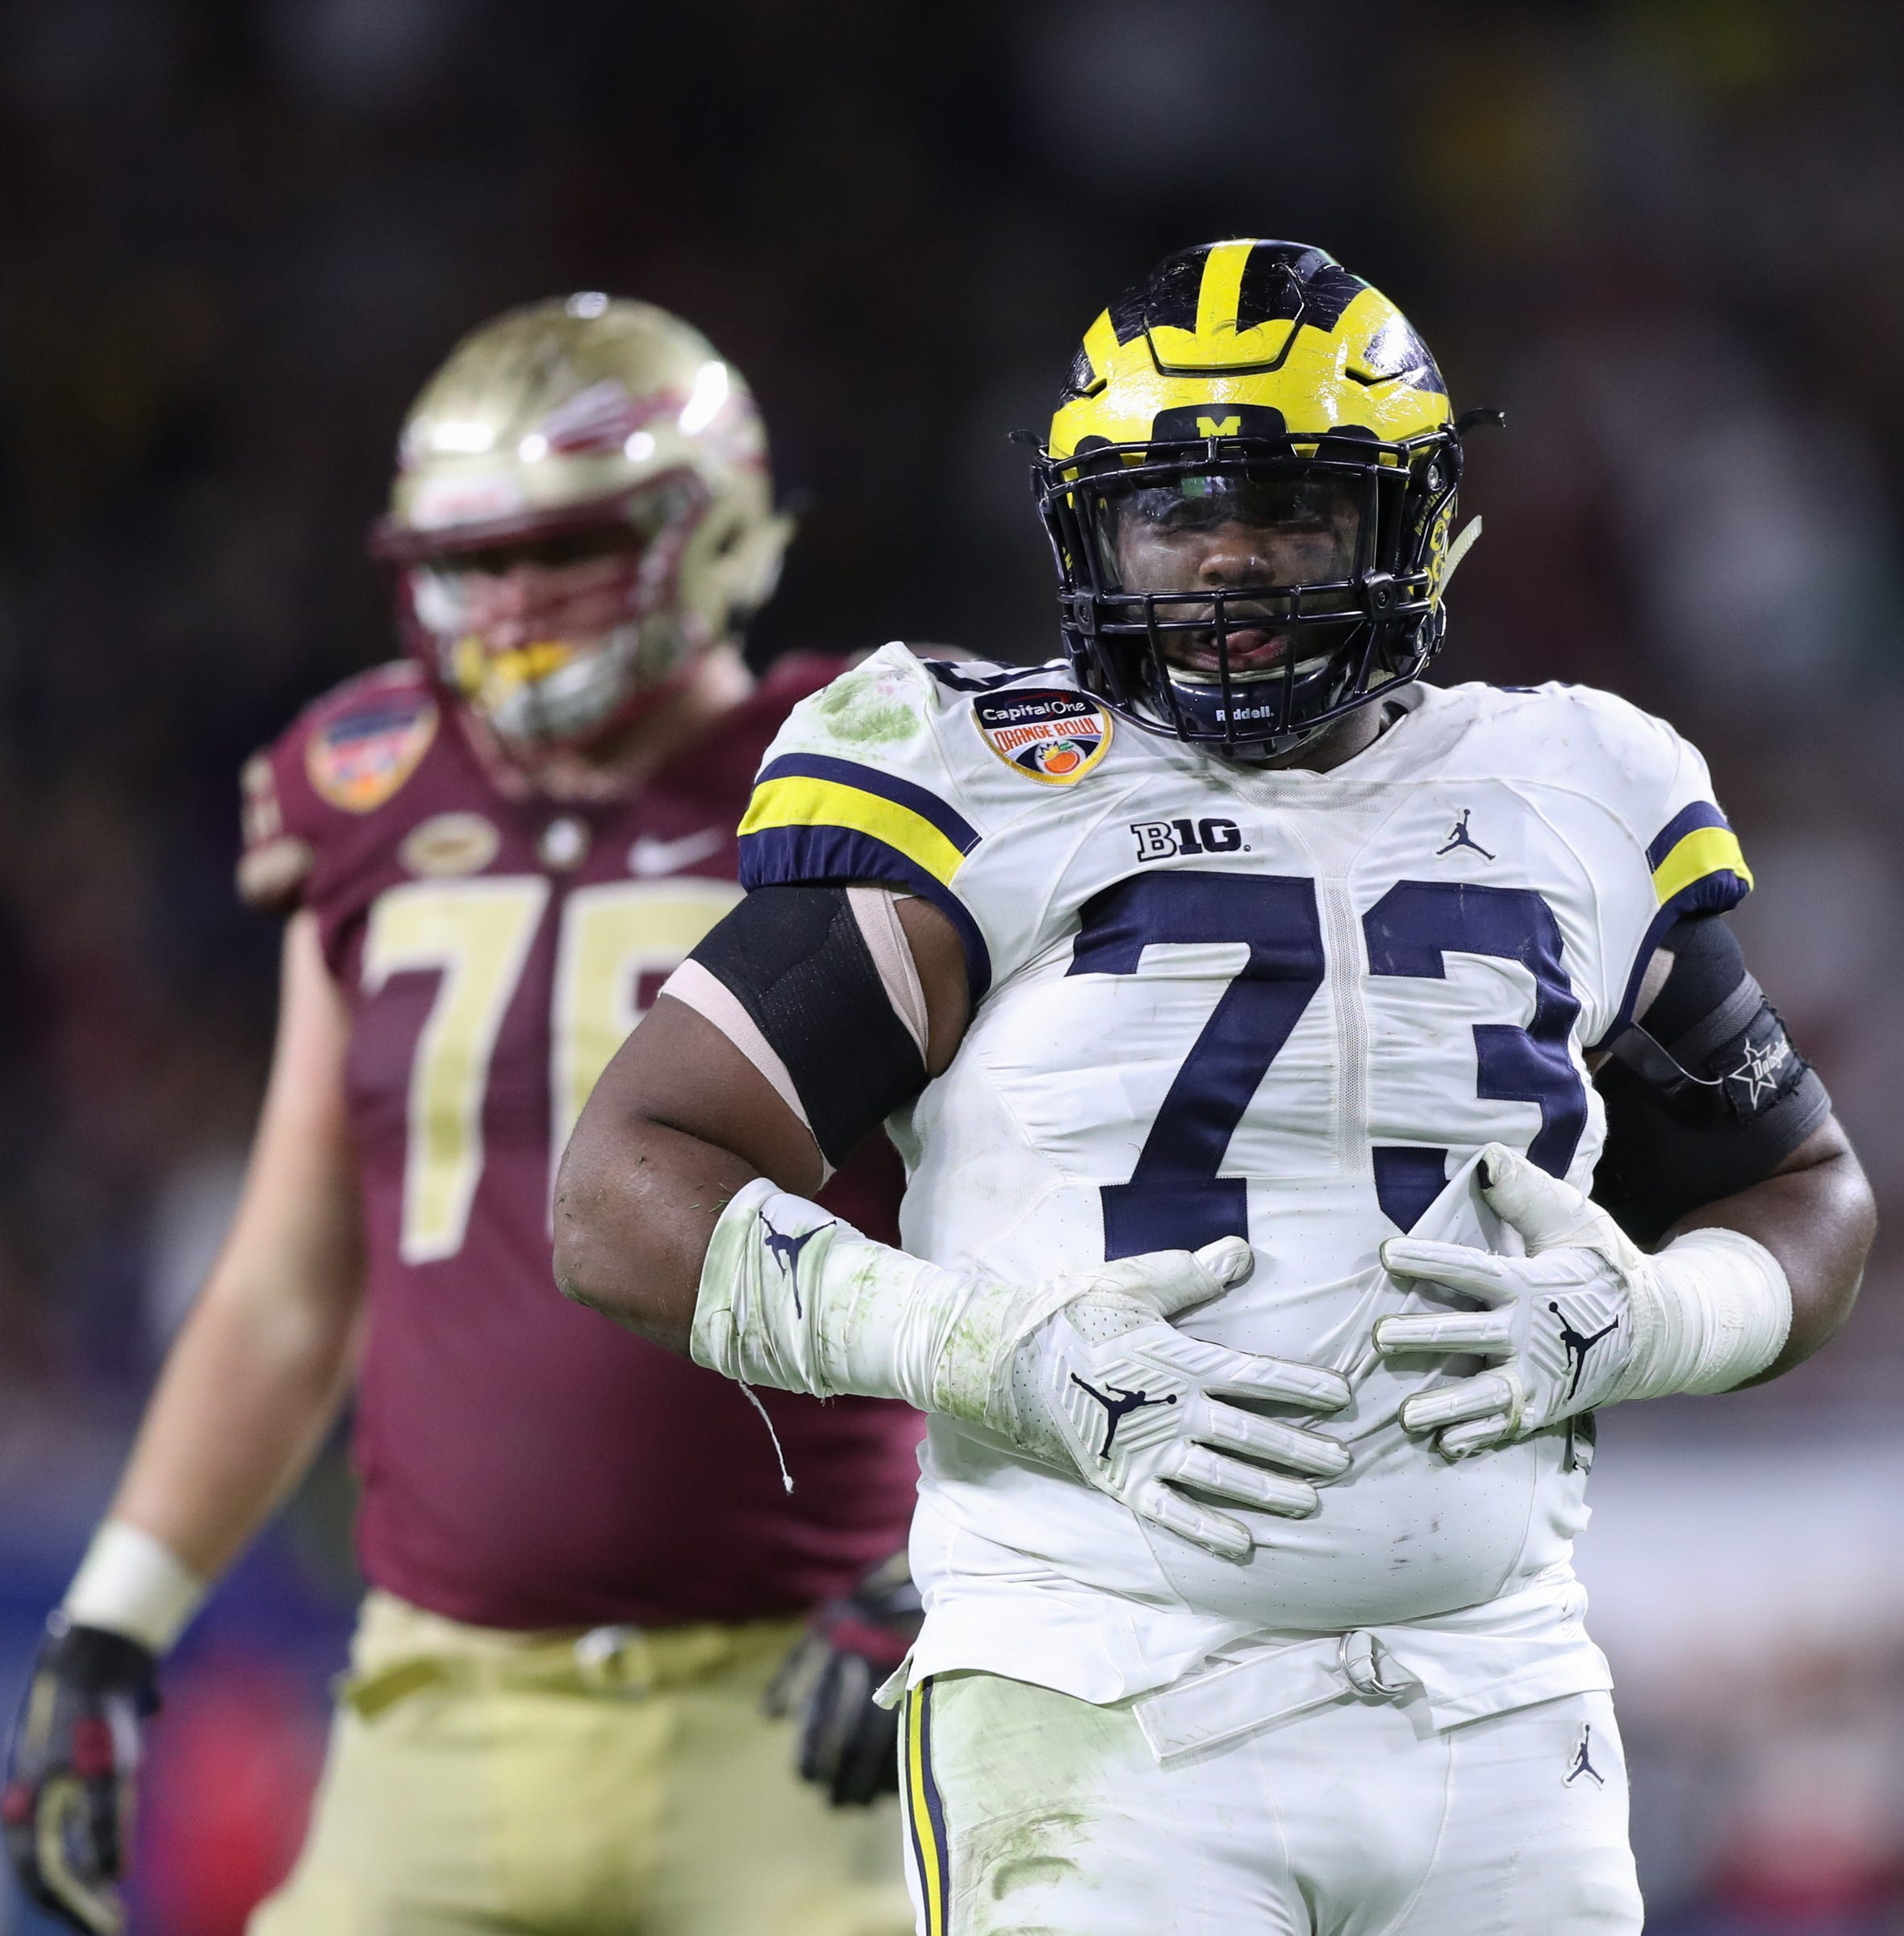 Michigan football spring preview: 5 players to watch